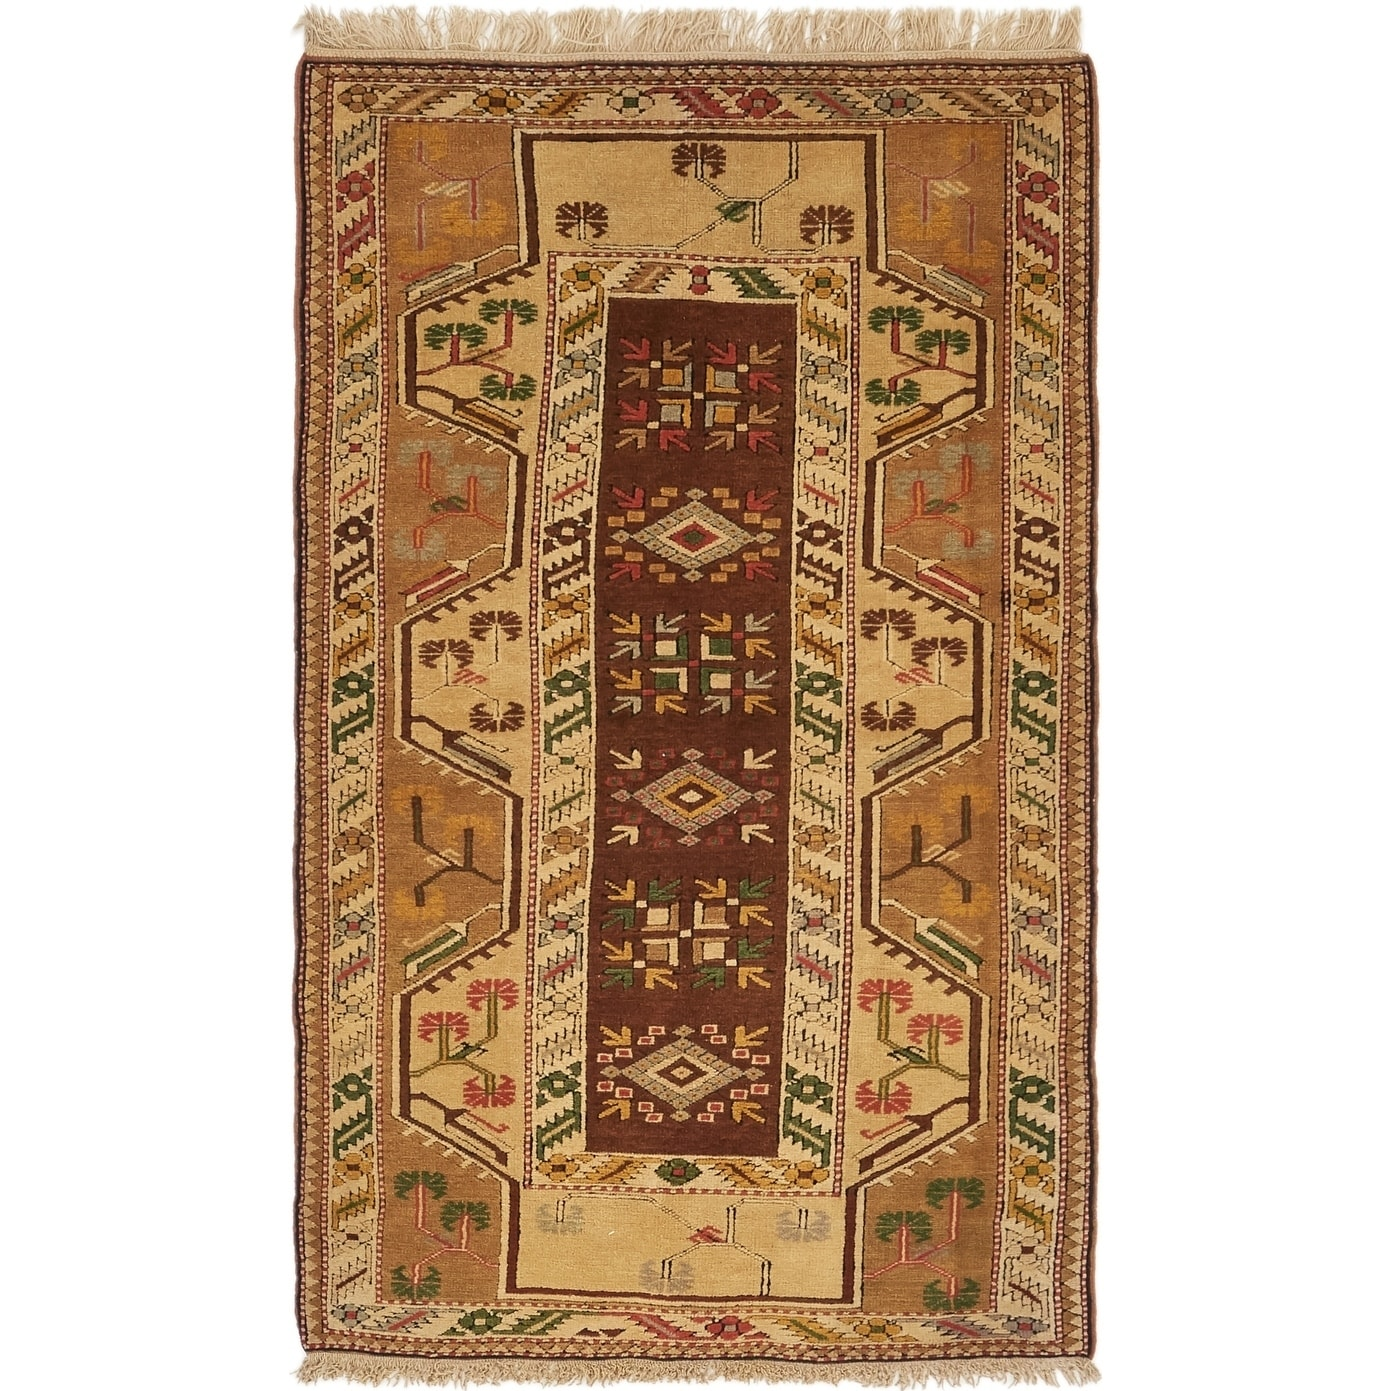 Hand Knotted Kars Semi Antique Wool Area Rug - 3' 7 x 6' (Olive - 3' 7 x 6')